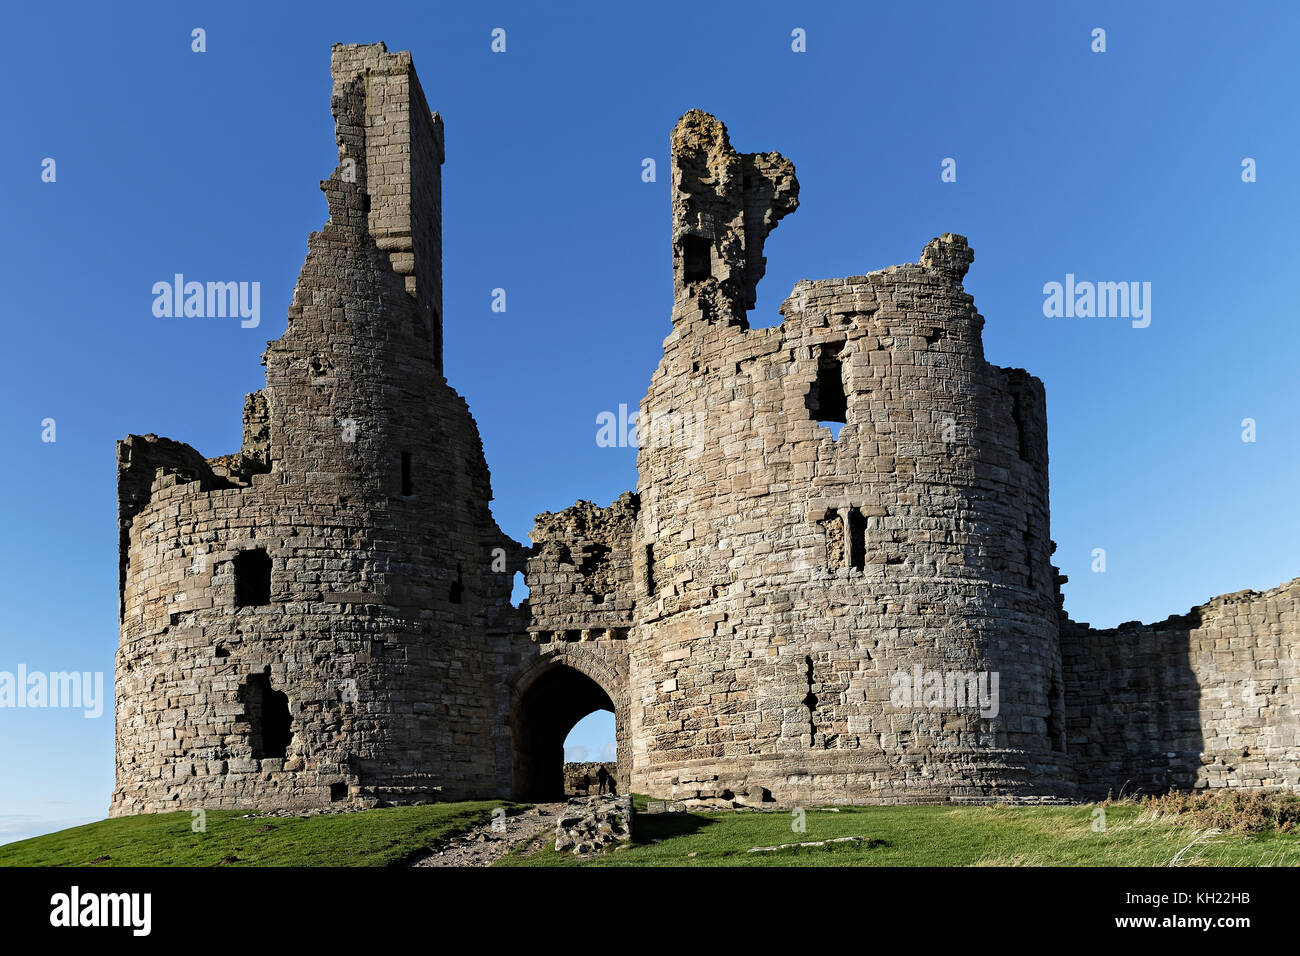 The Great Gatehouse of Dunstanburgh Tower - Stock Image